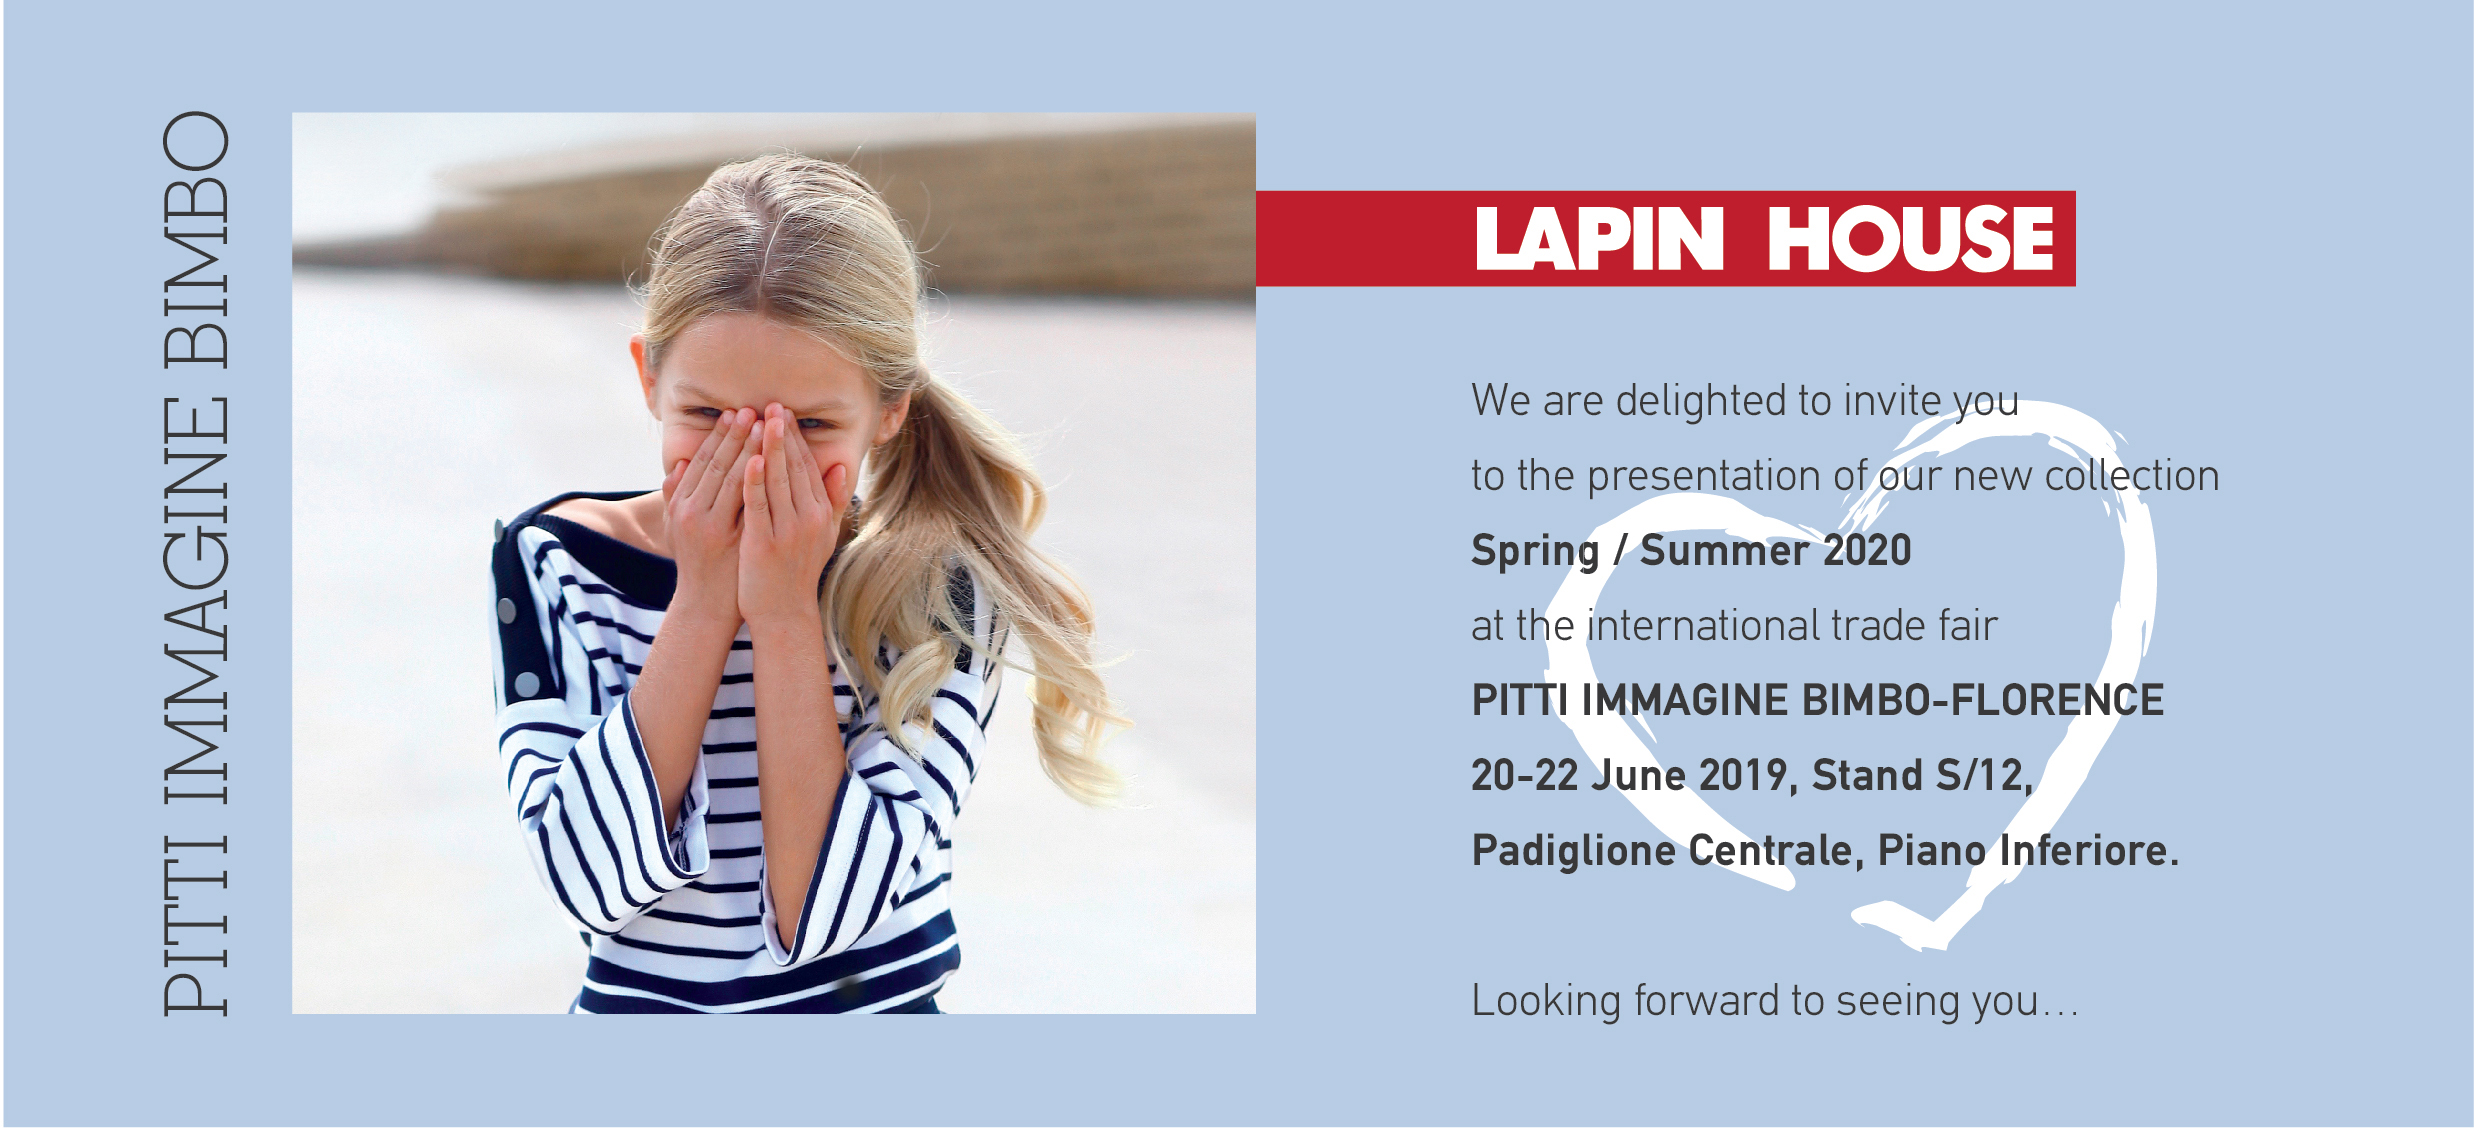 Lapin House is very excited to invite you to Pitti Immagine Bimbo 89 !